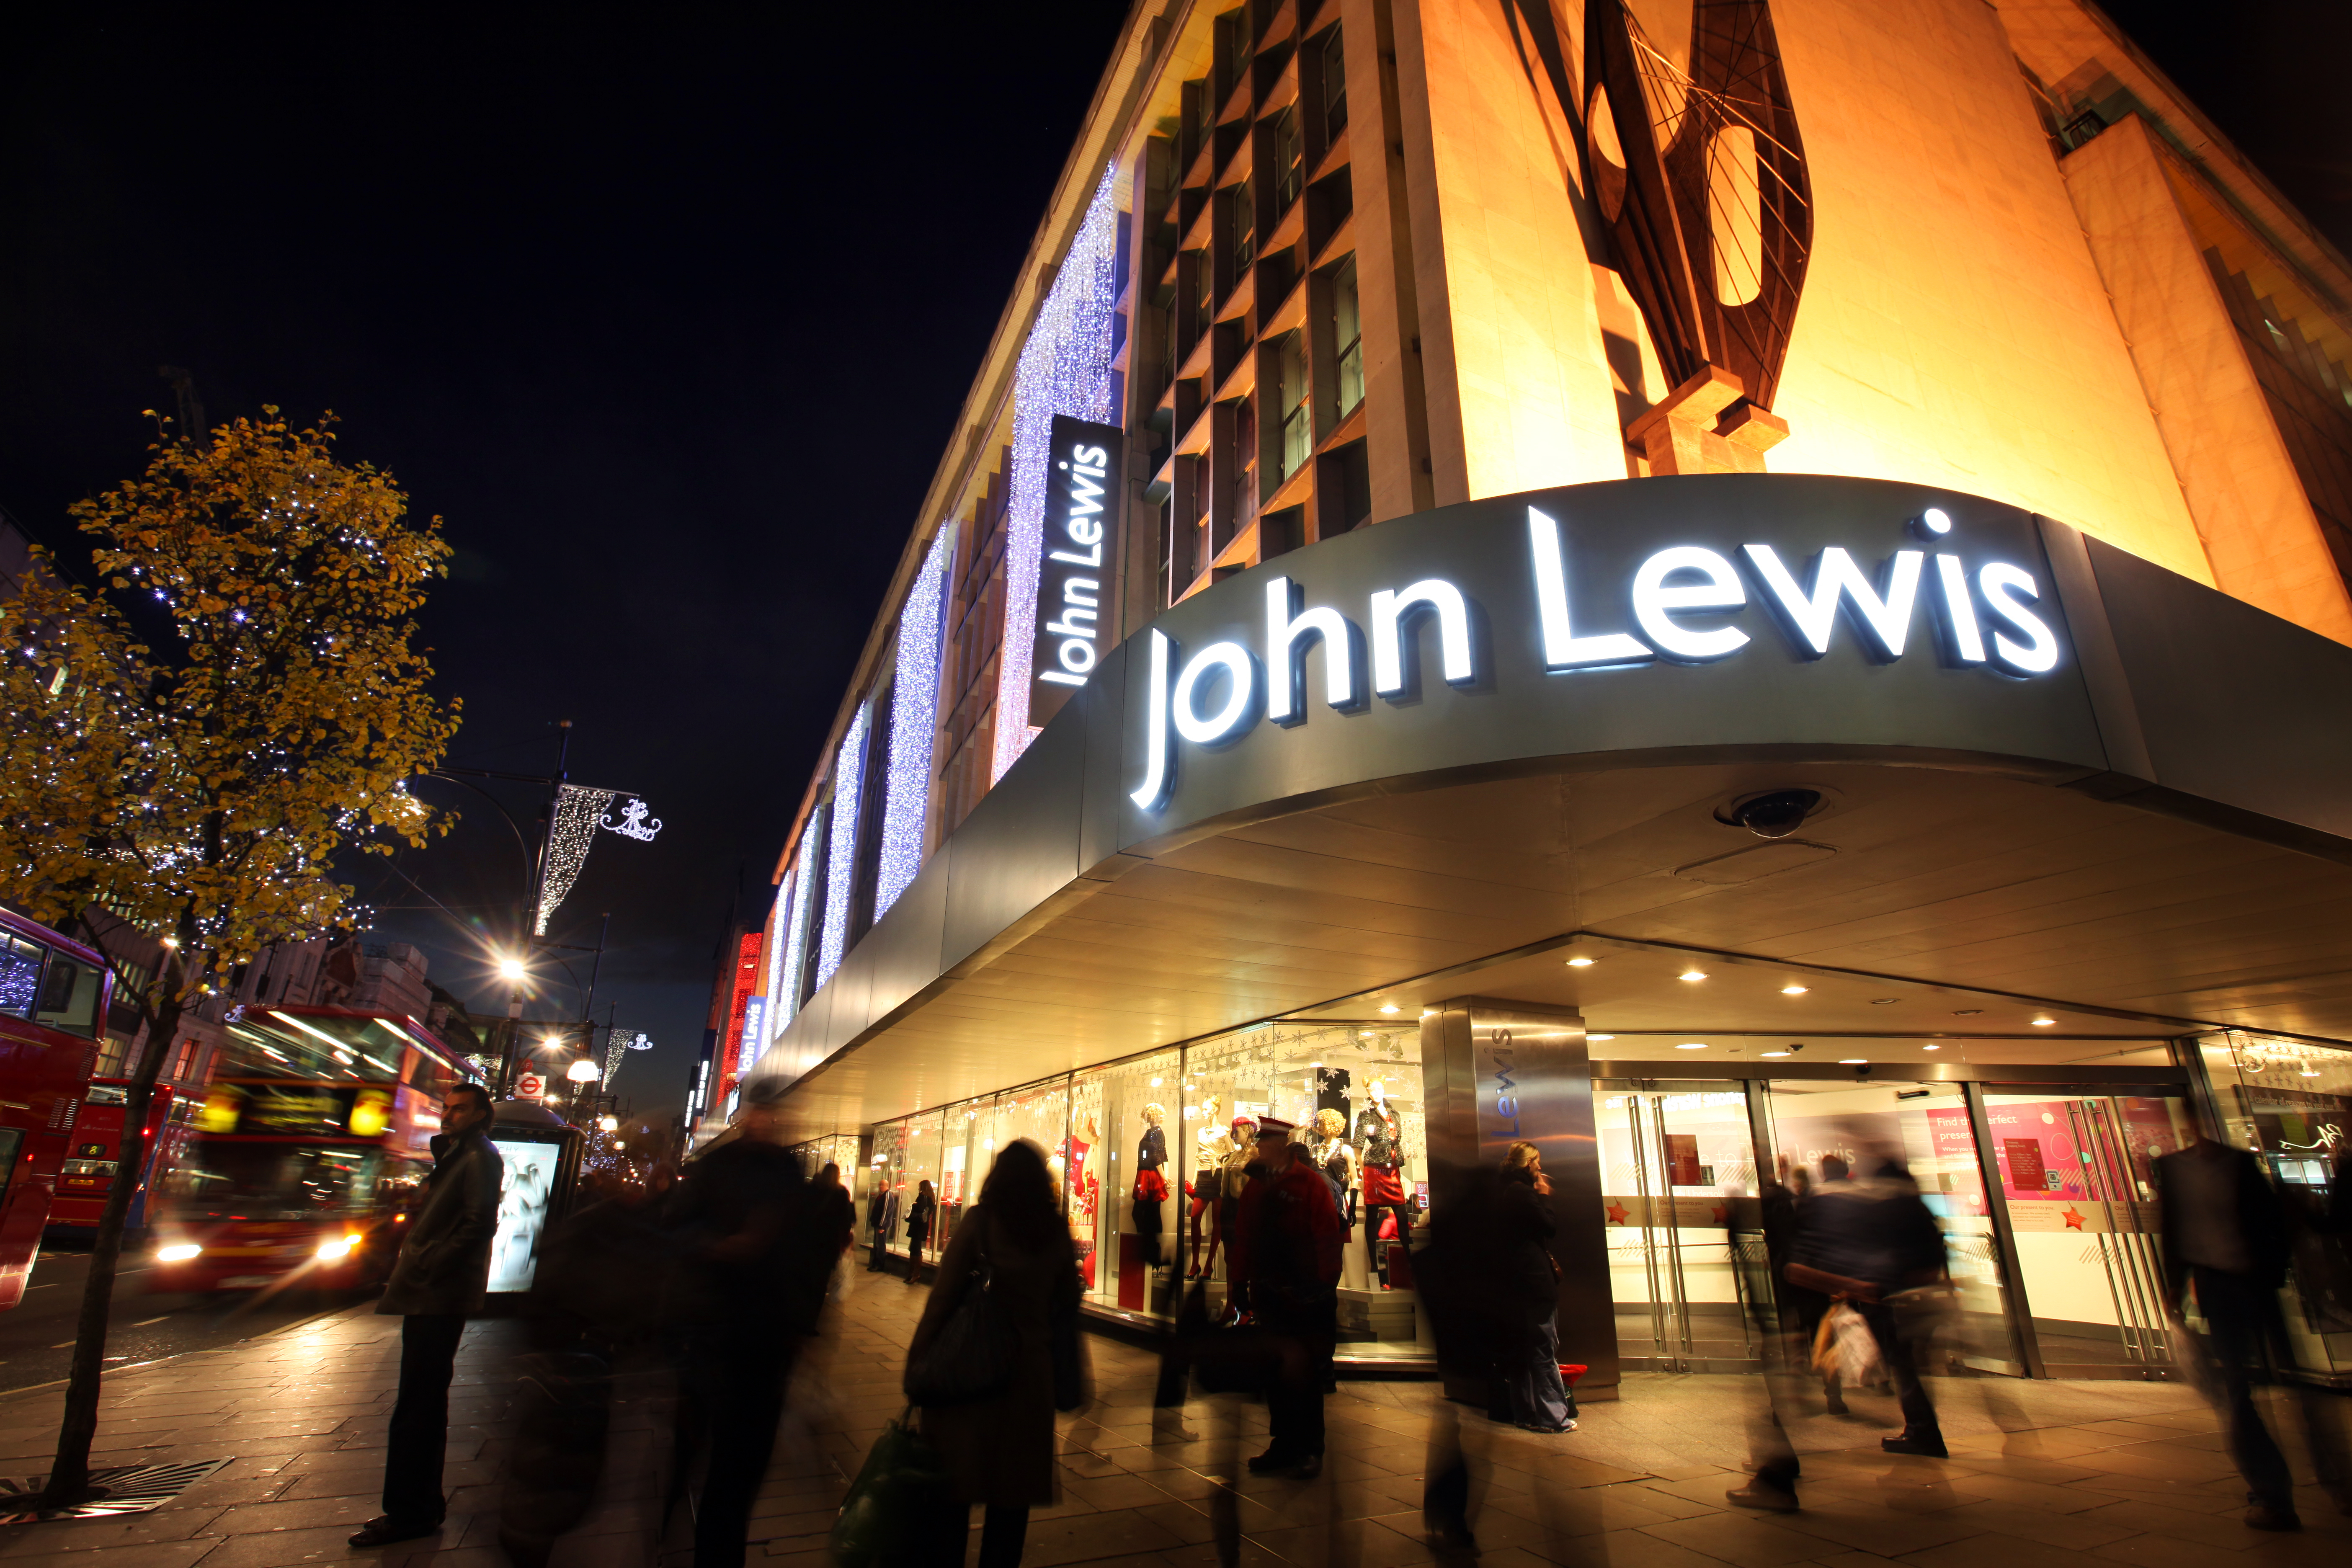 Christmas came early for John Lewis as Black Friday created biggest sales week in 150 years